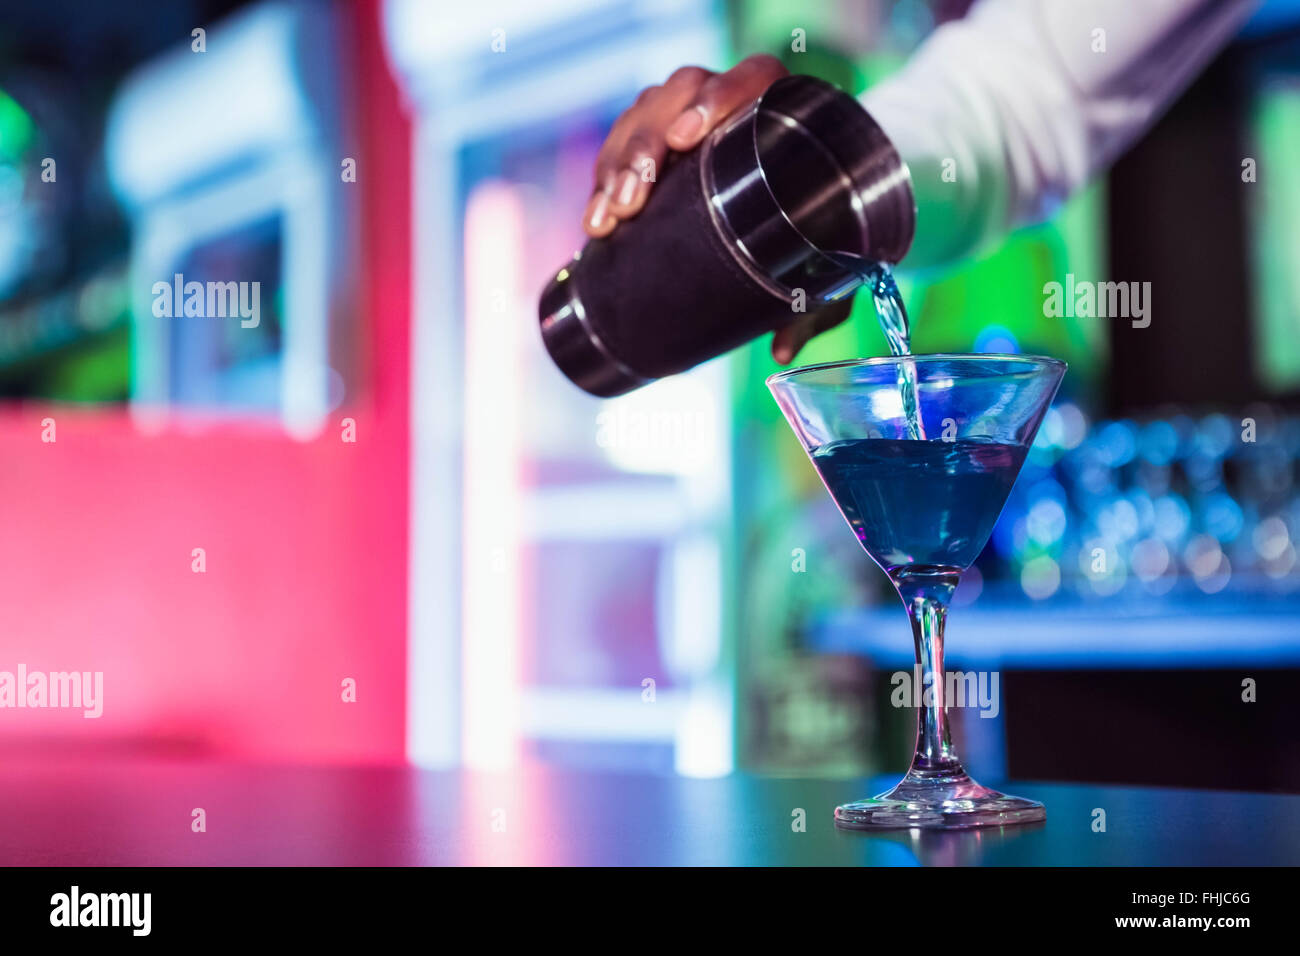 Bartender pouring cocktail from shaker - Stock Image